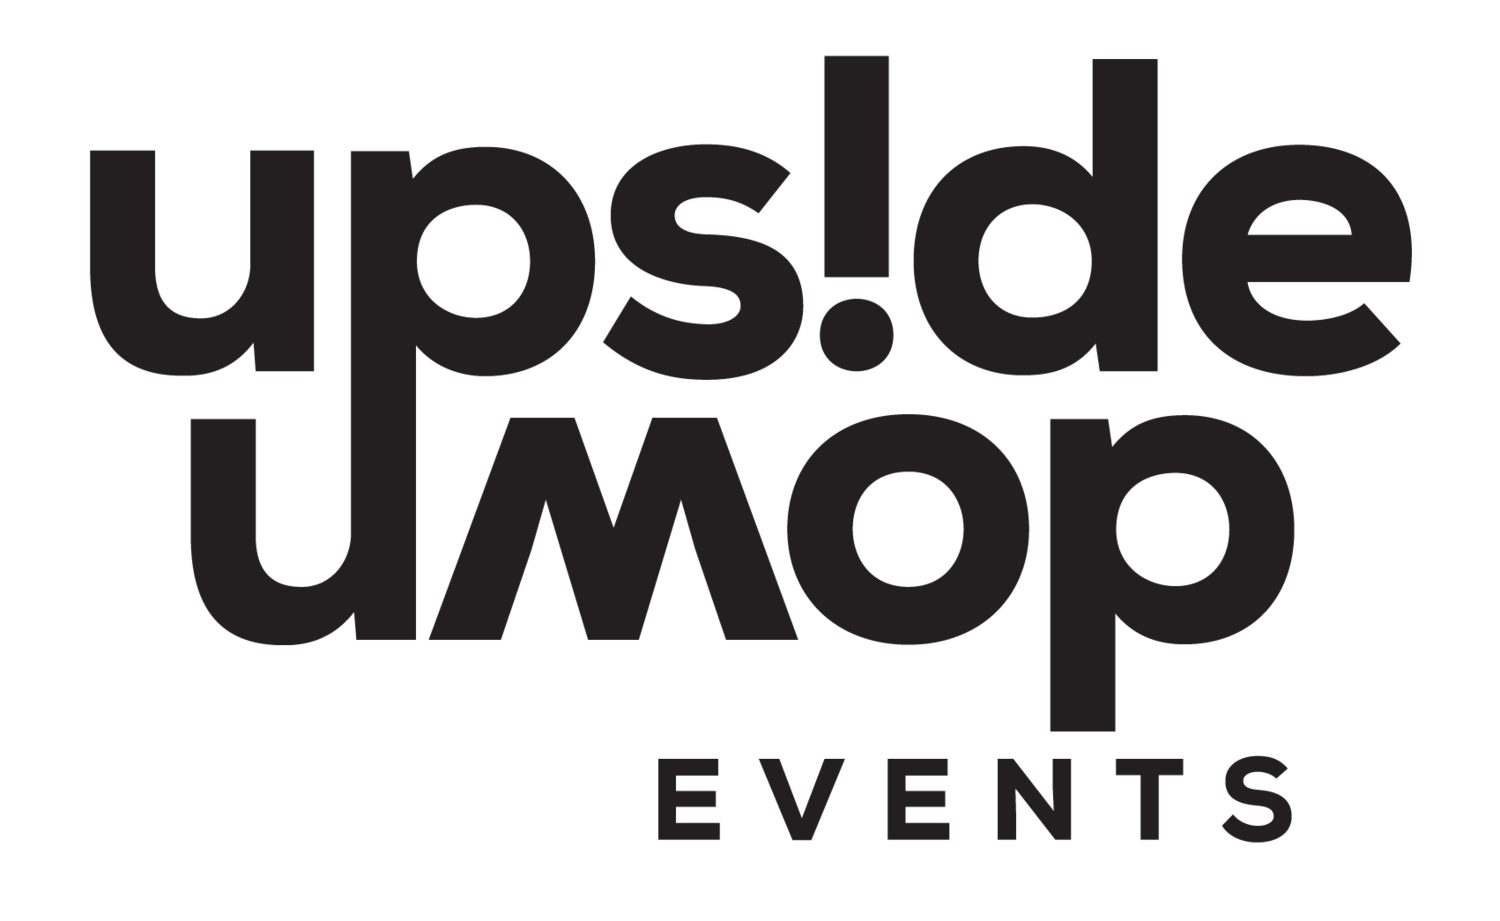 UPSIDE DOWN EVENTS